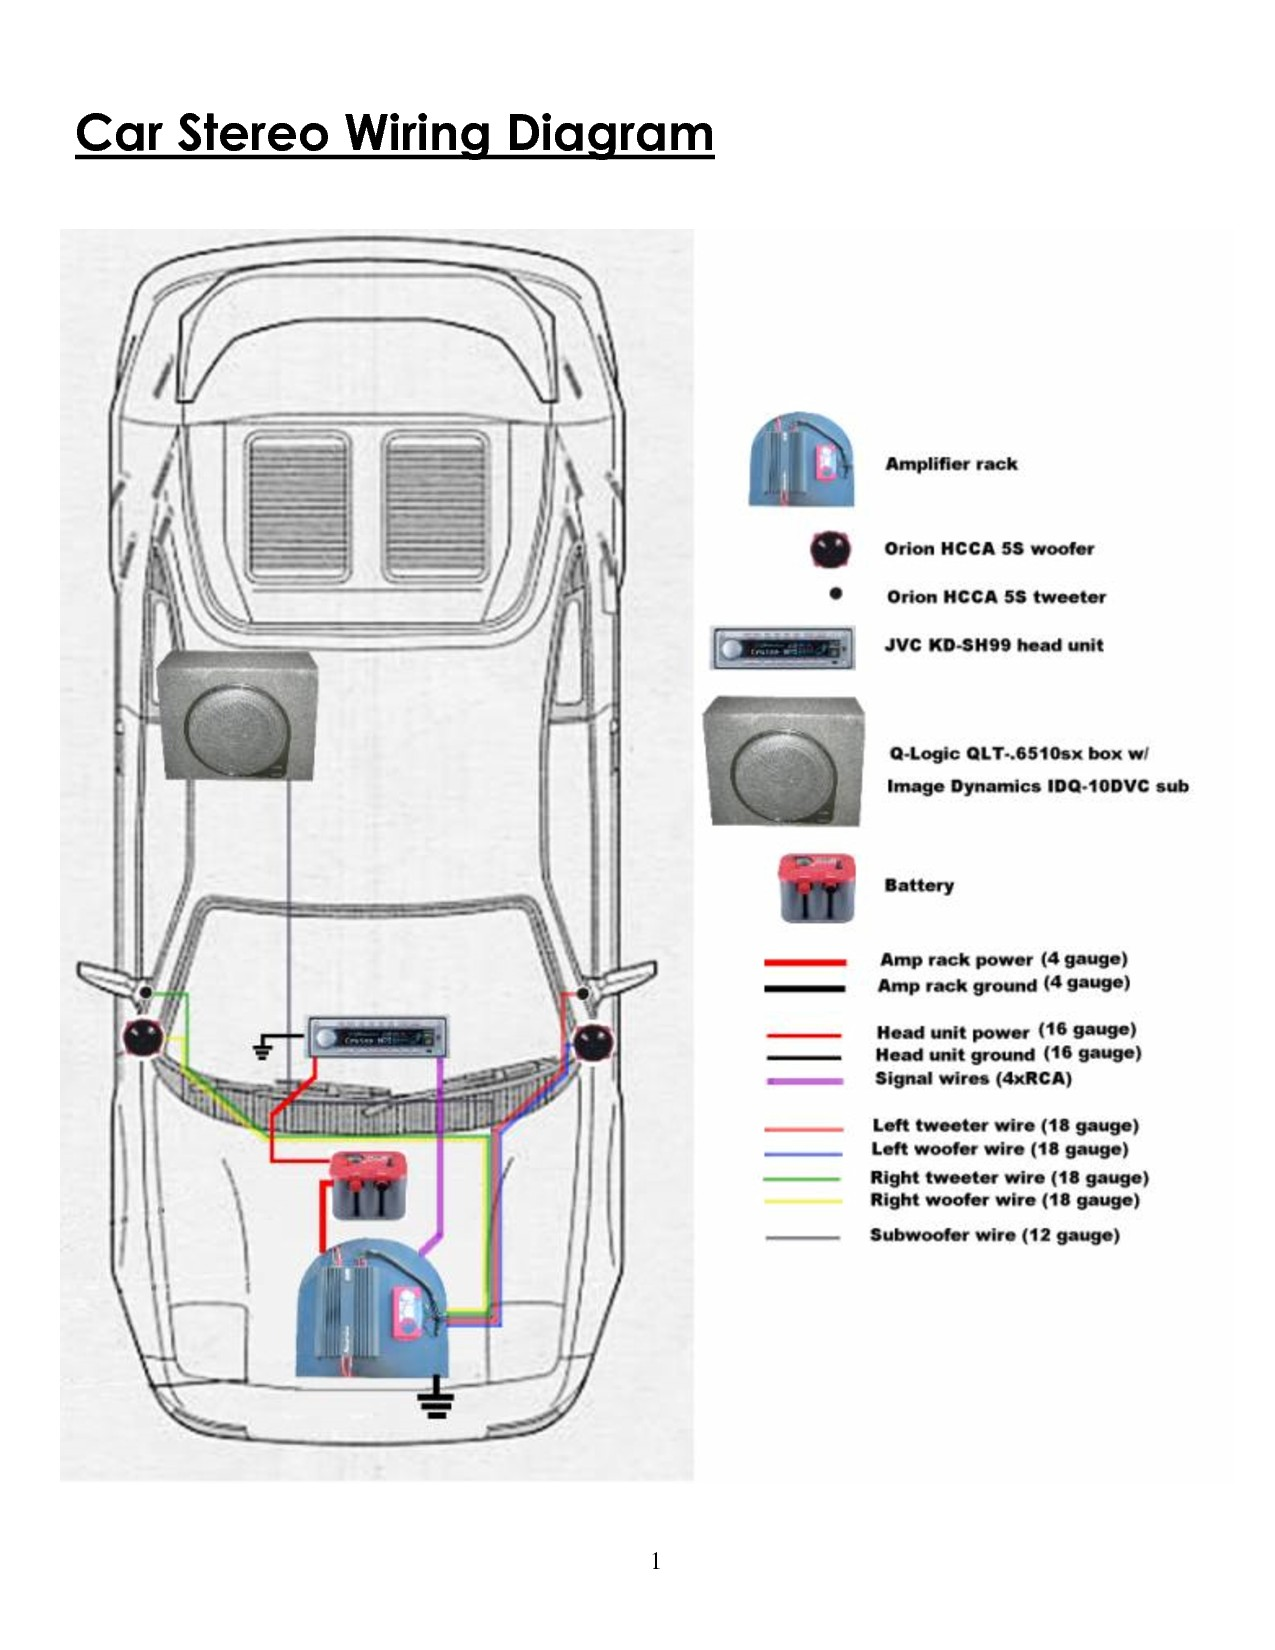 Wiring Diagram for Car Amplifier and Subwoofer Car Audio Wiring ...